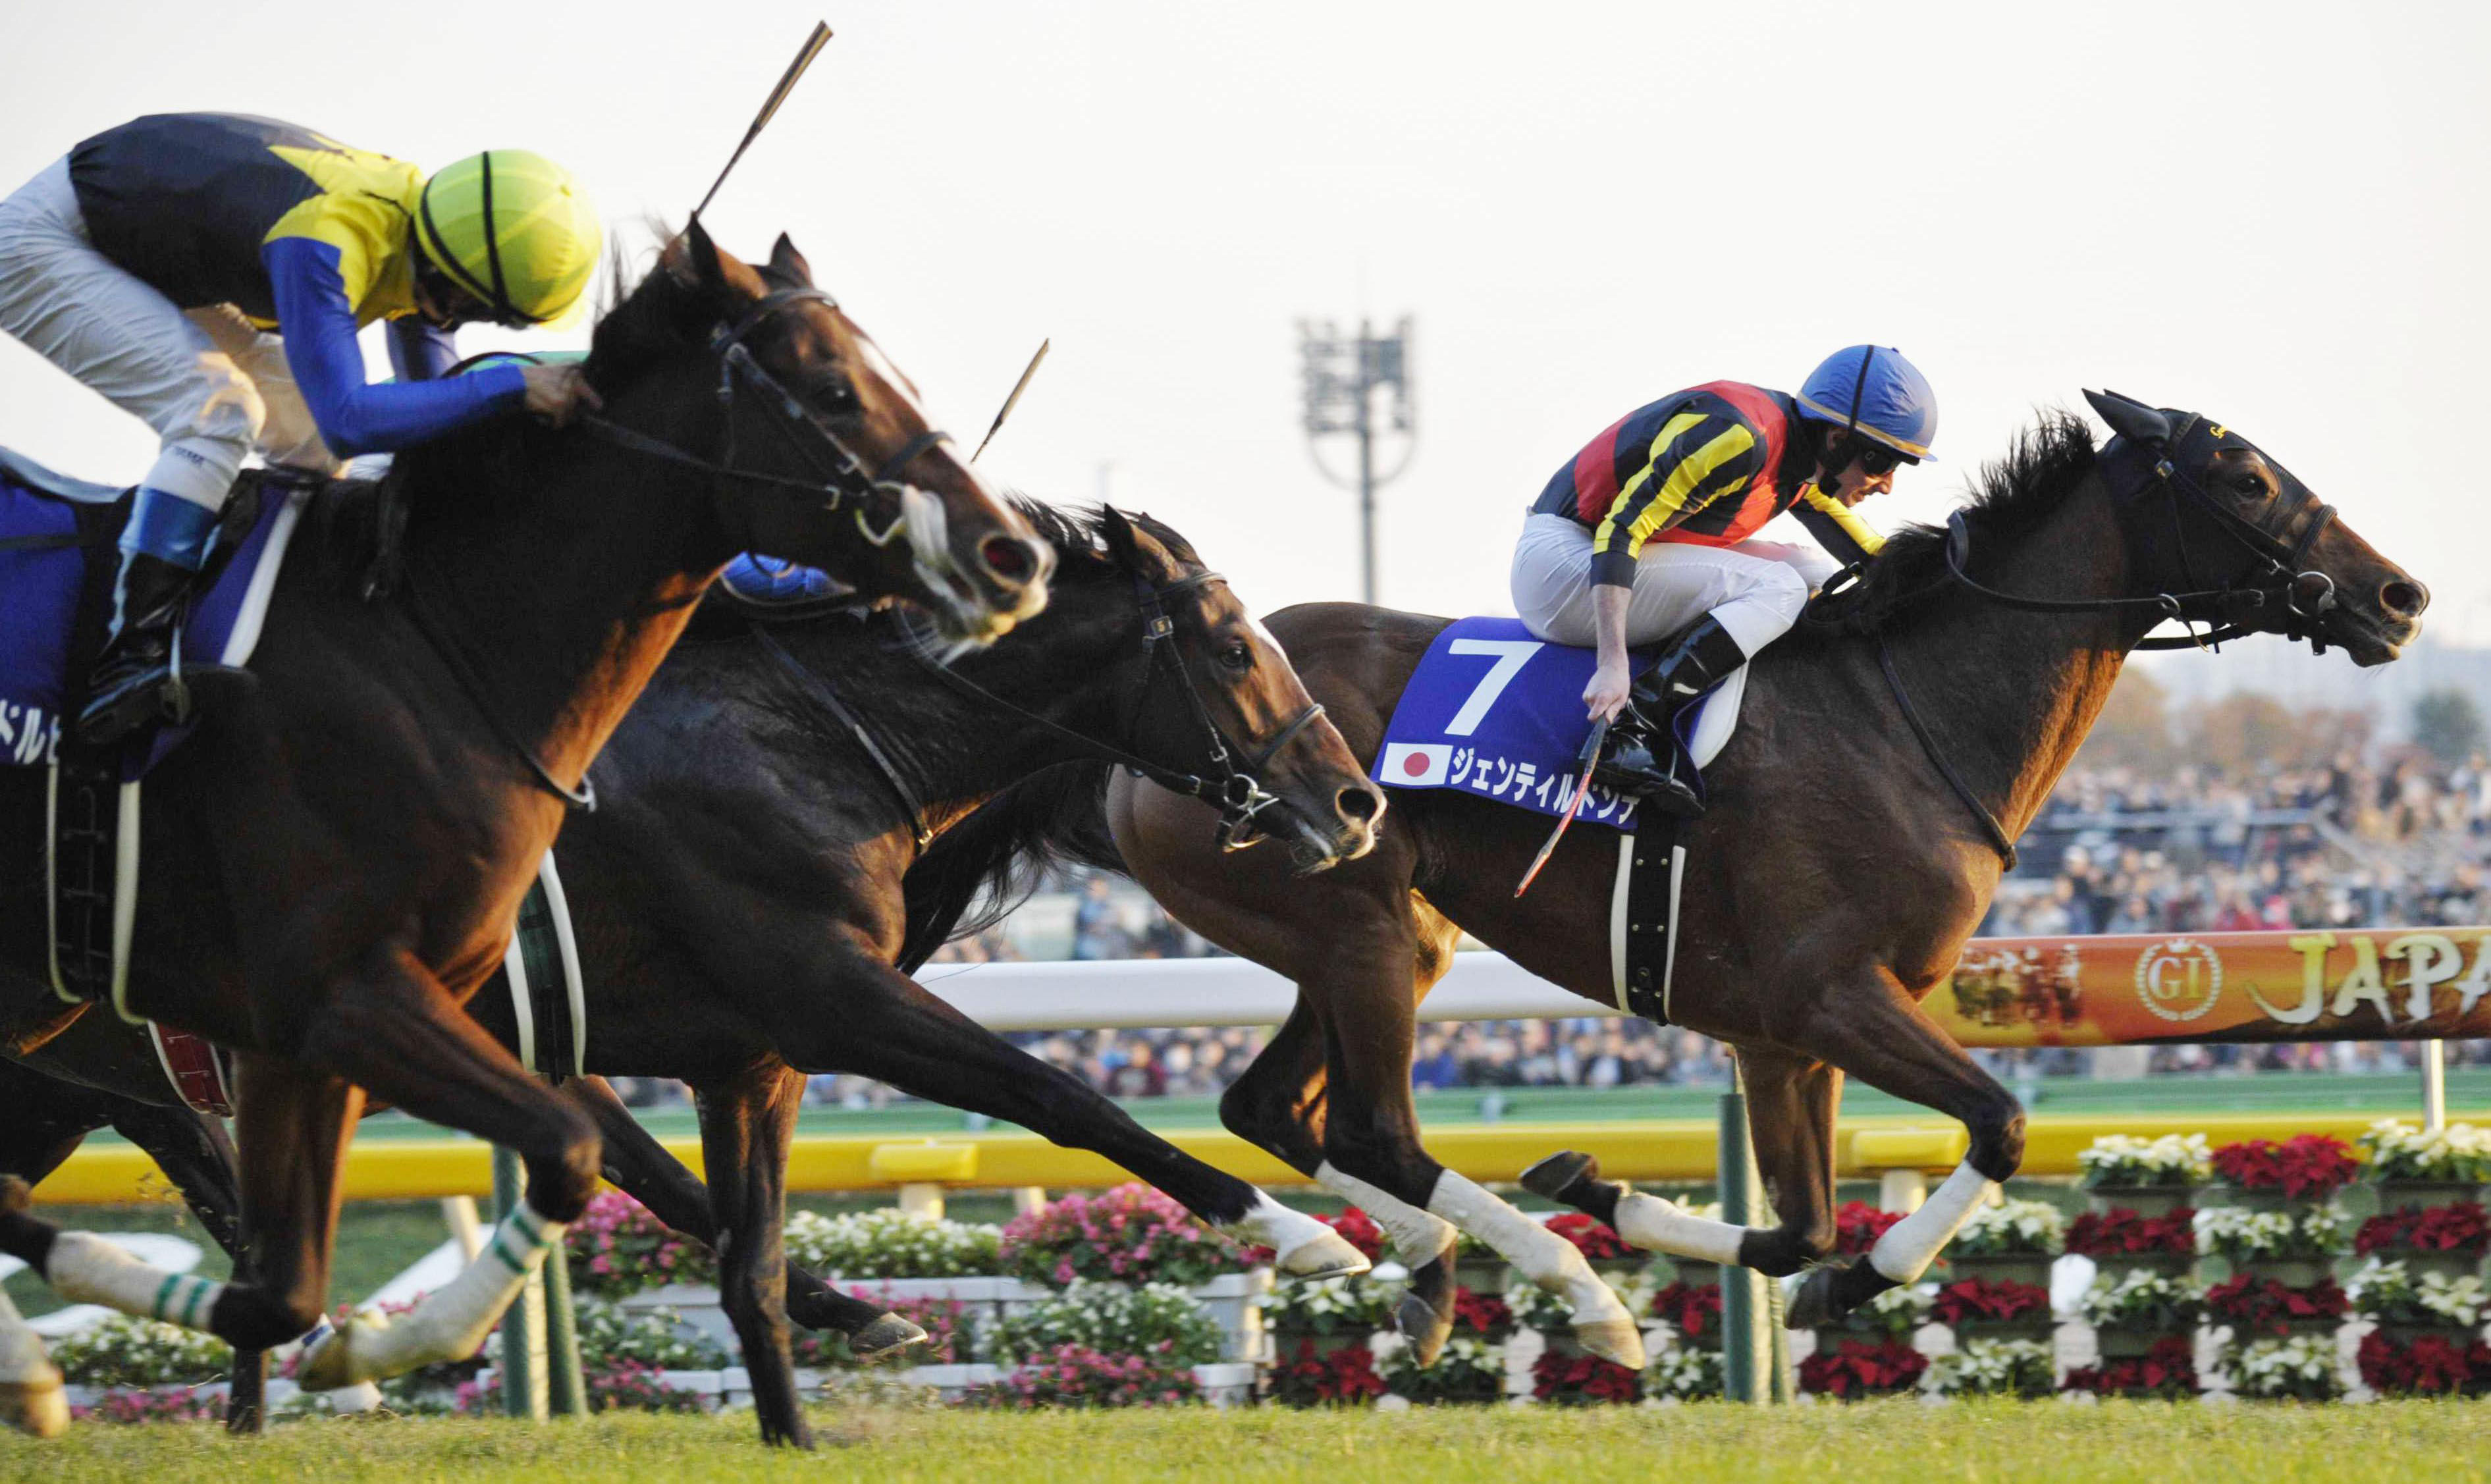 Do it again: Gentildonna races ahead of the competition to win the Japan Cup at Tokyo Racecourse on Sunday for a second straight year. | KYODO